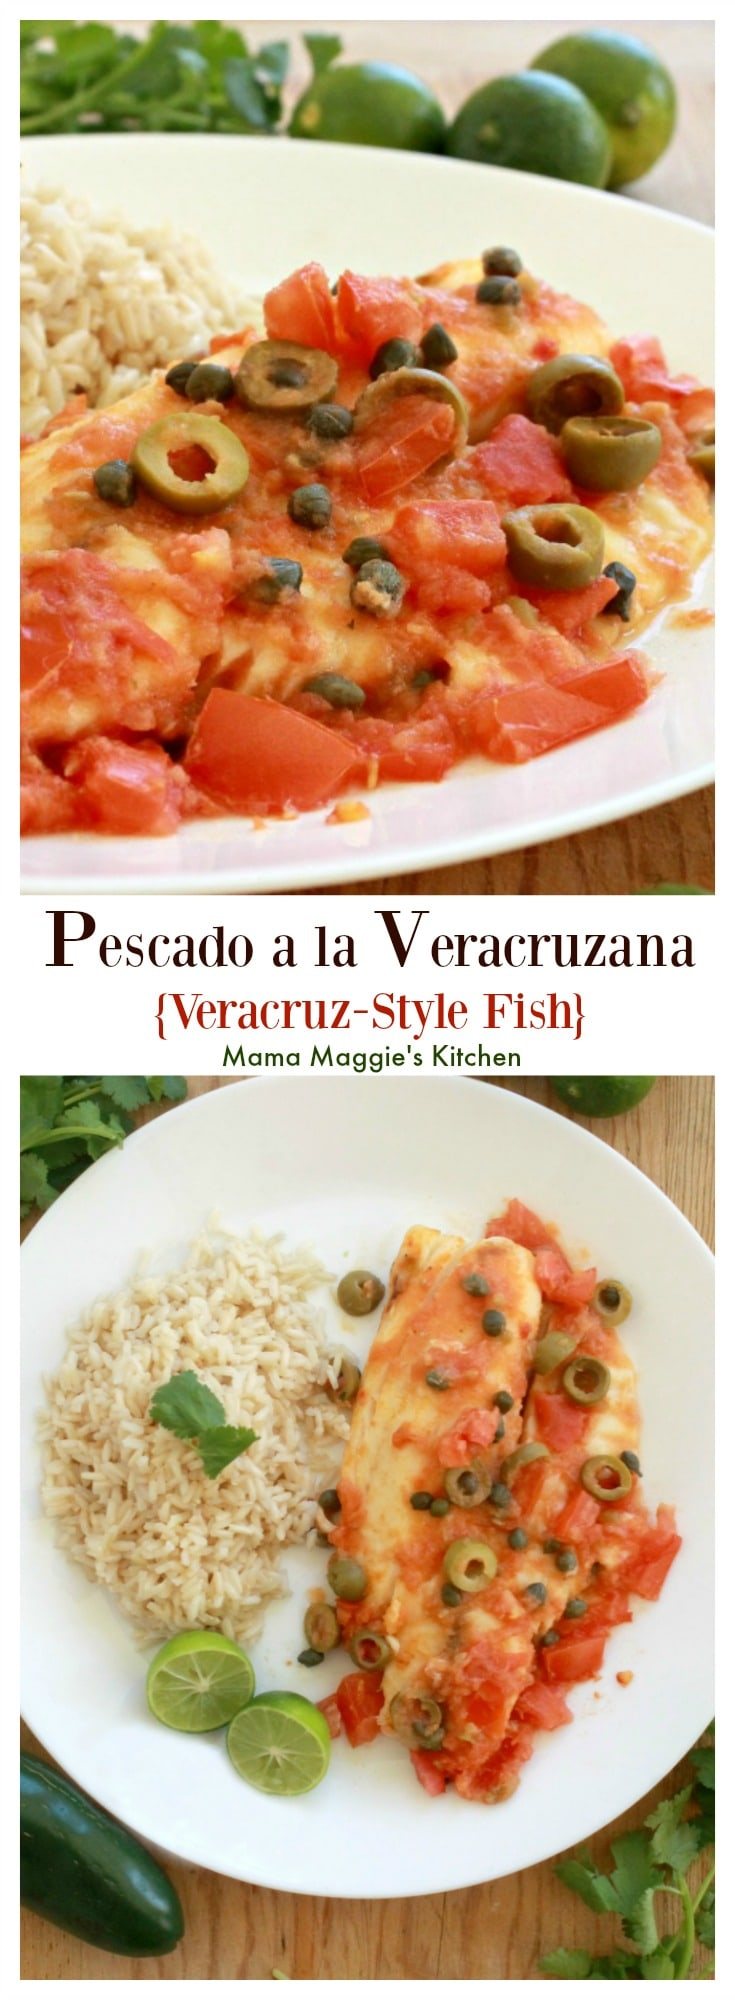 Pescado a la Veracruzana, or Veracruz-Style Fish, is a savory Mexican seafood dish that will blow your tastebuds away. It's not very spicy with delicious bites of olive and briny capers. Enjoy! By Mama Maggie's Kitchen